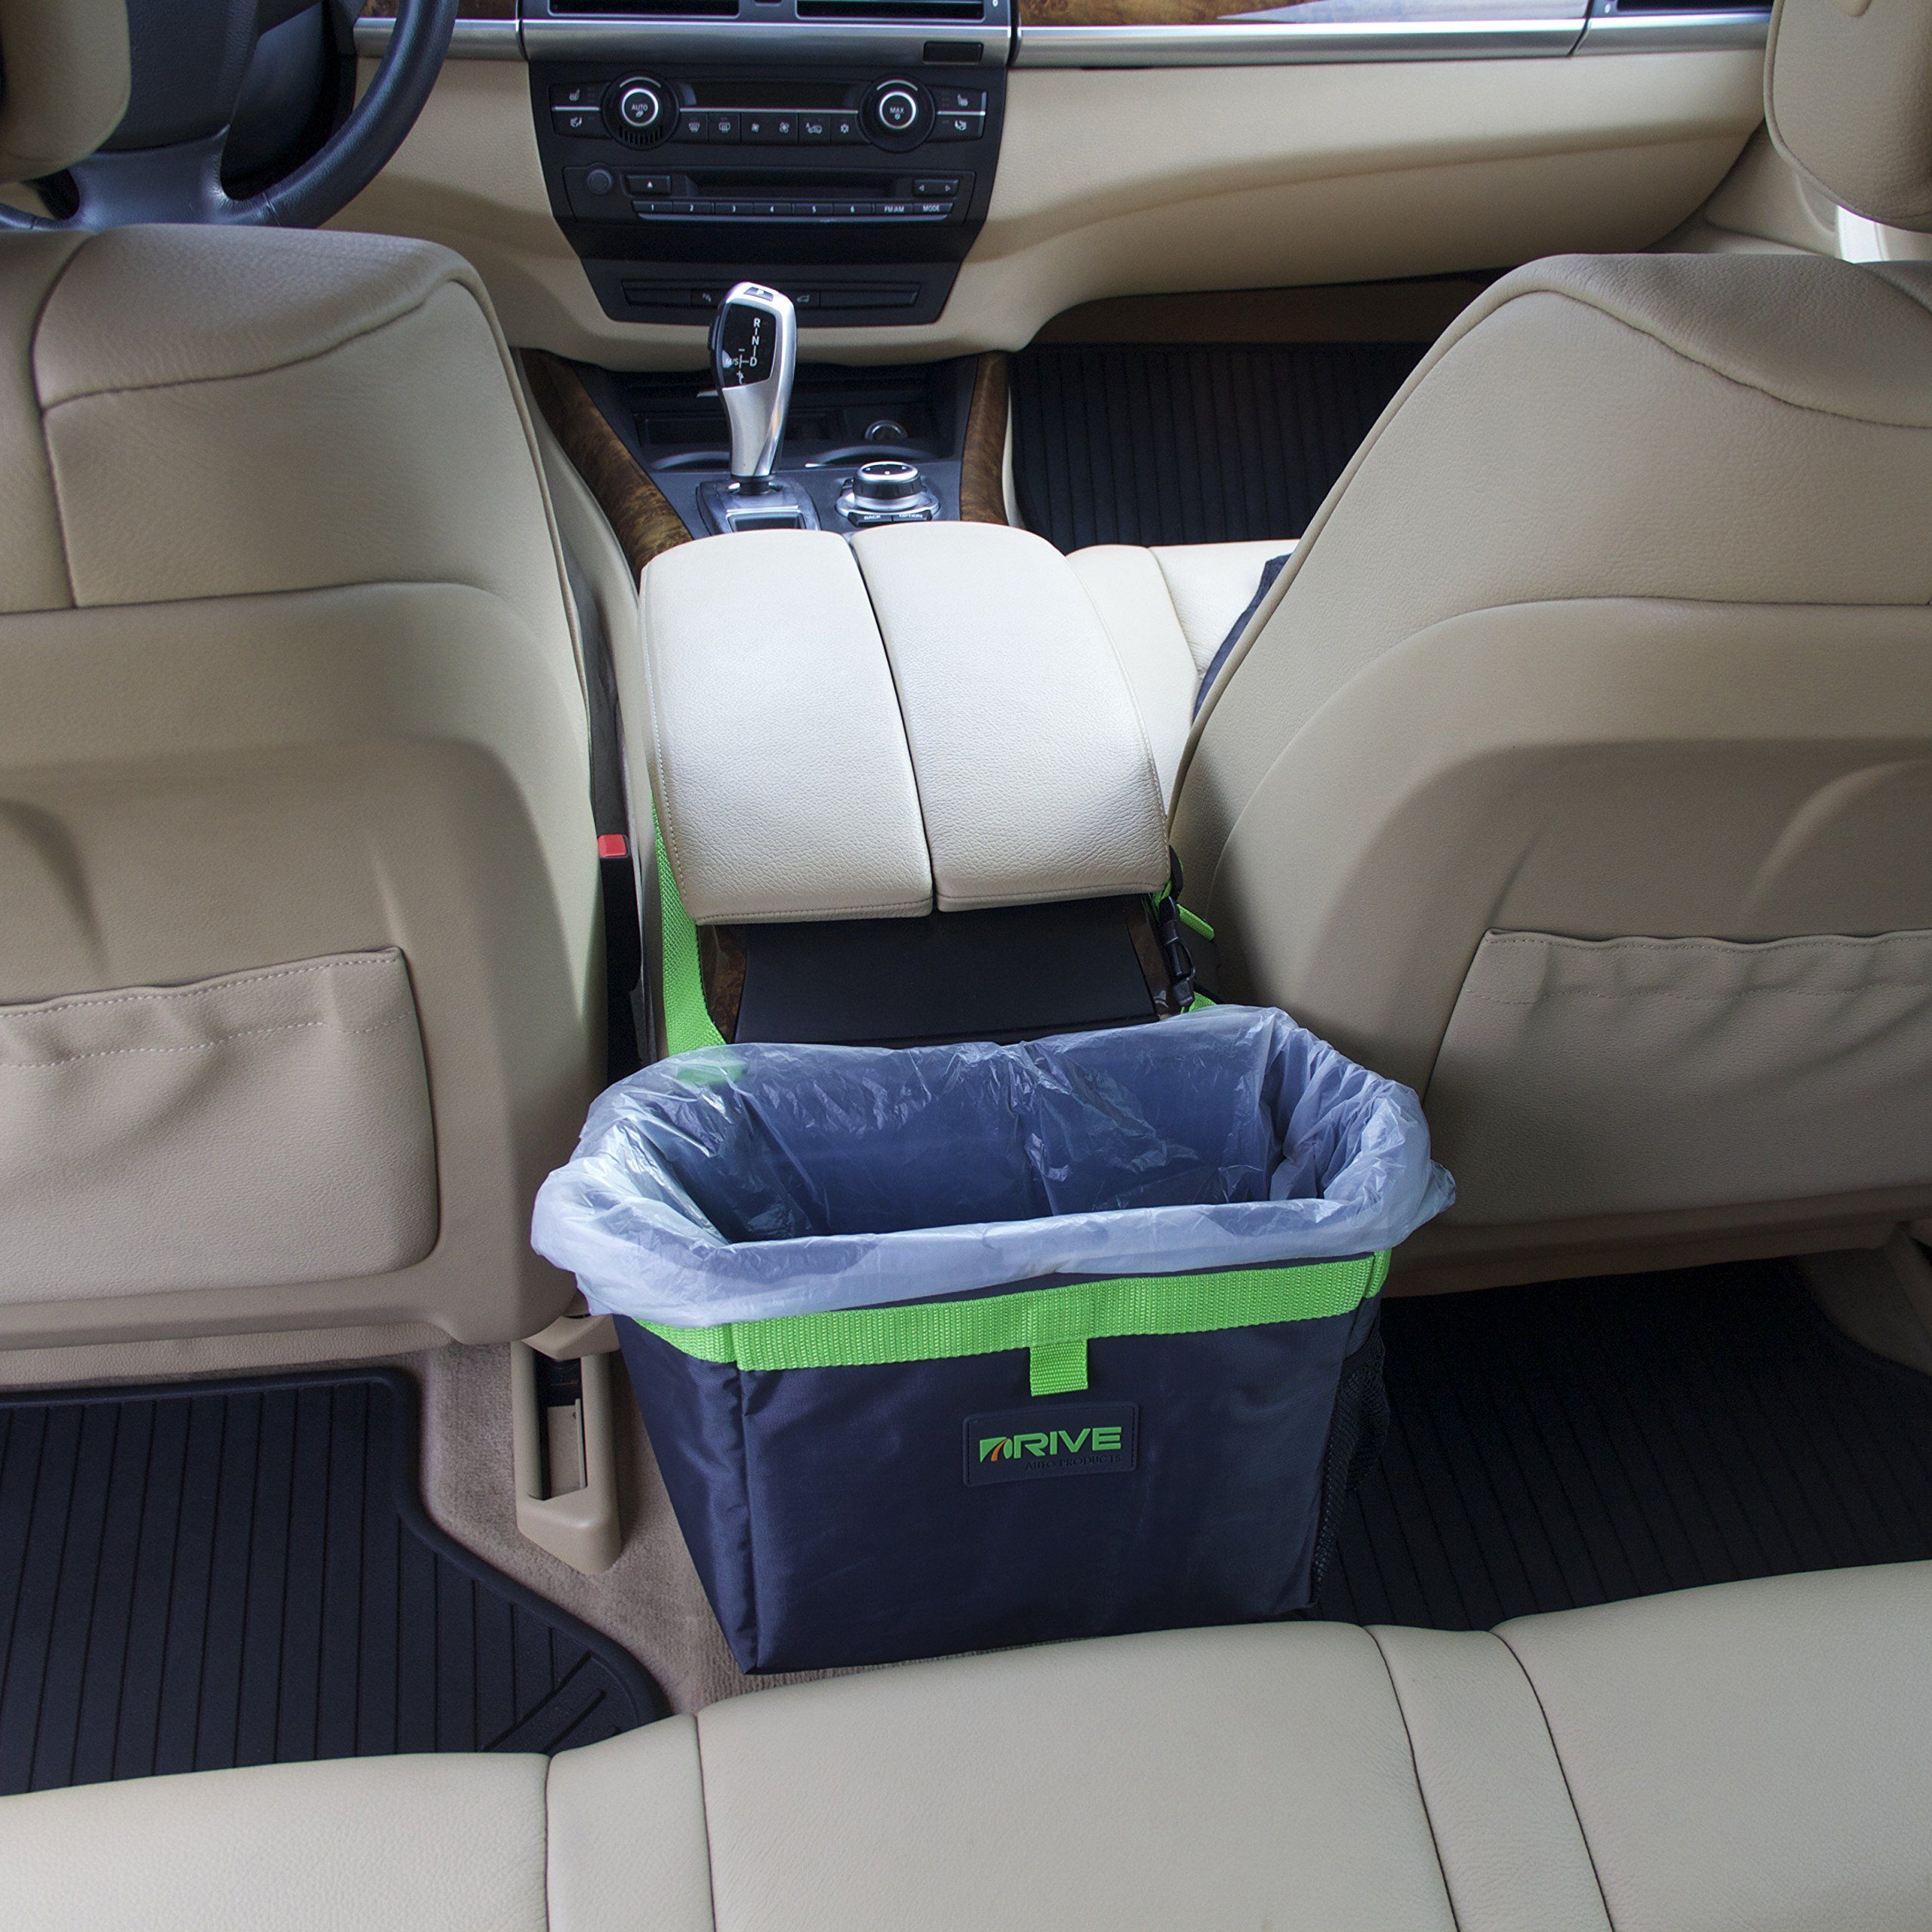 Amazon.com: DRIVE Car Garbage Can - Best Auto Trash Bag for Litter ...